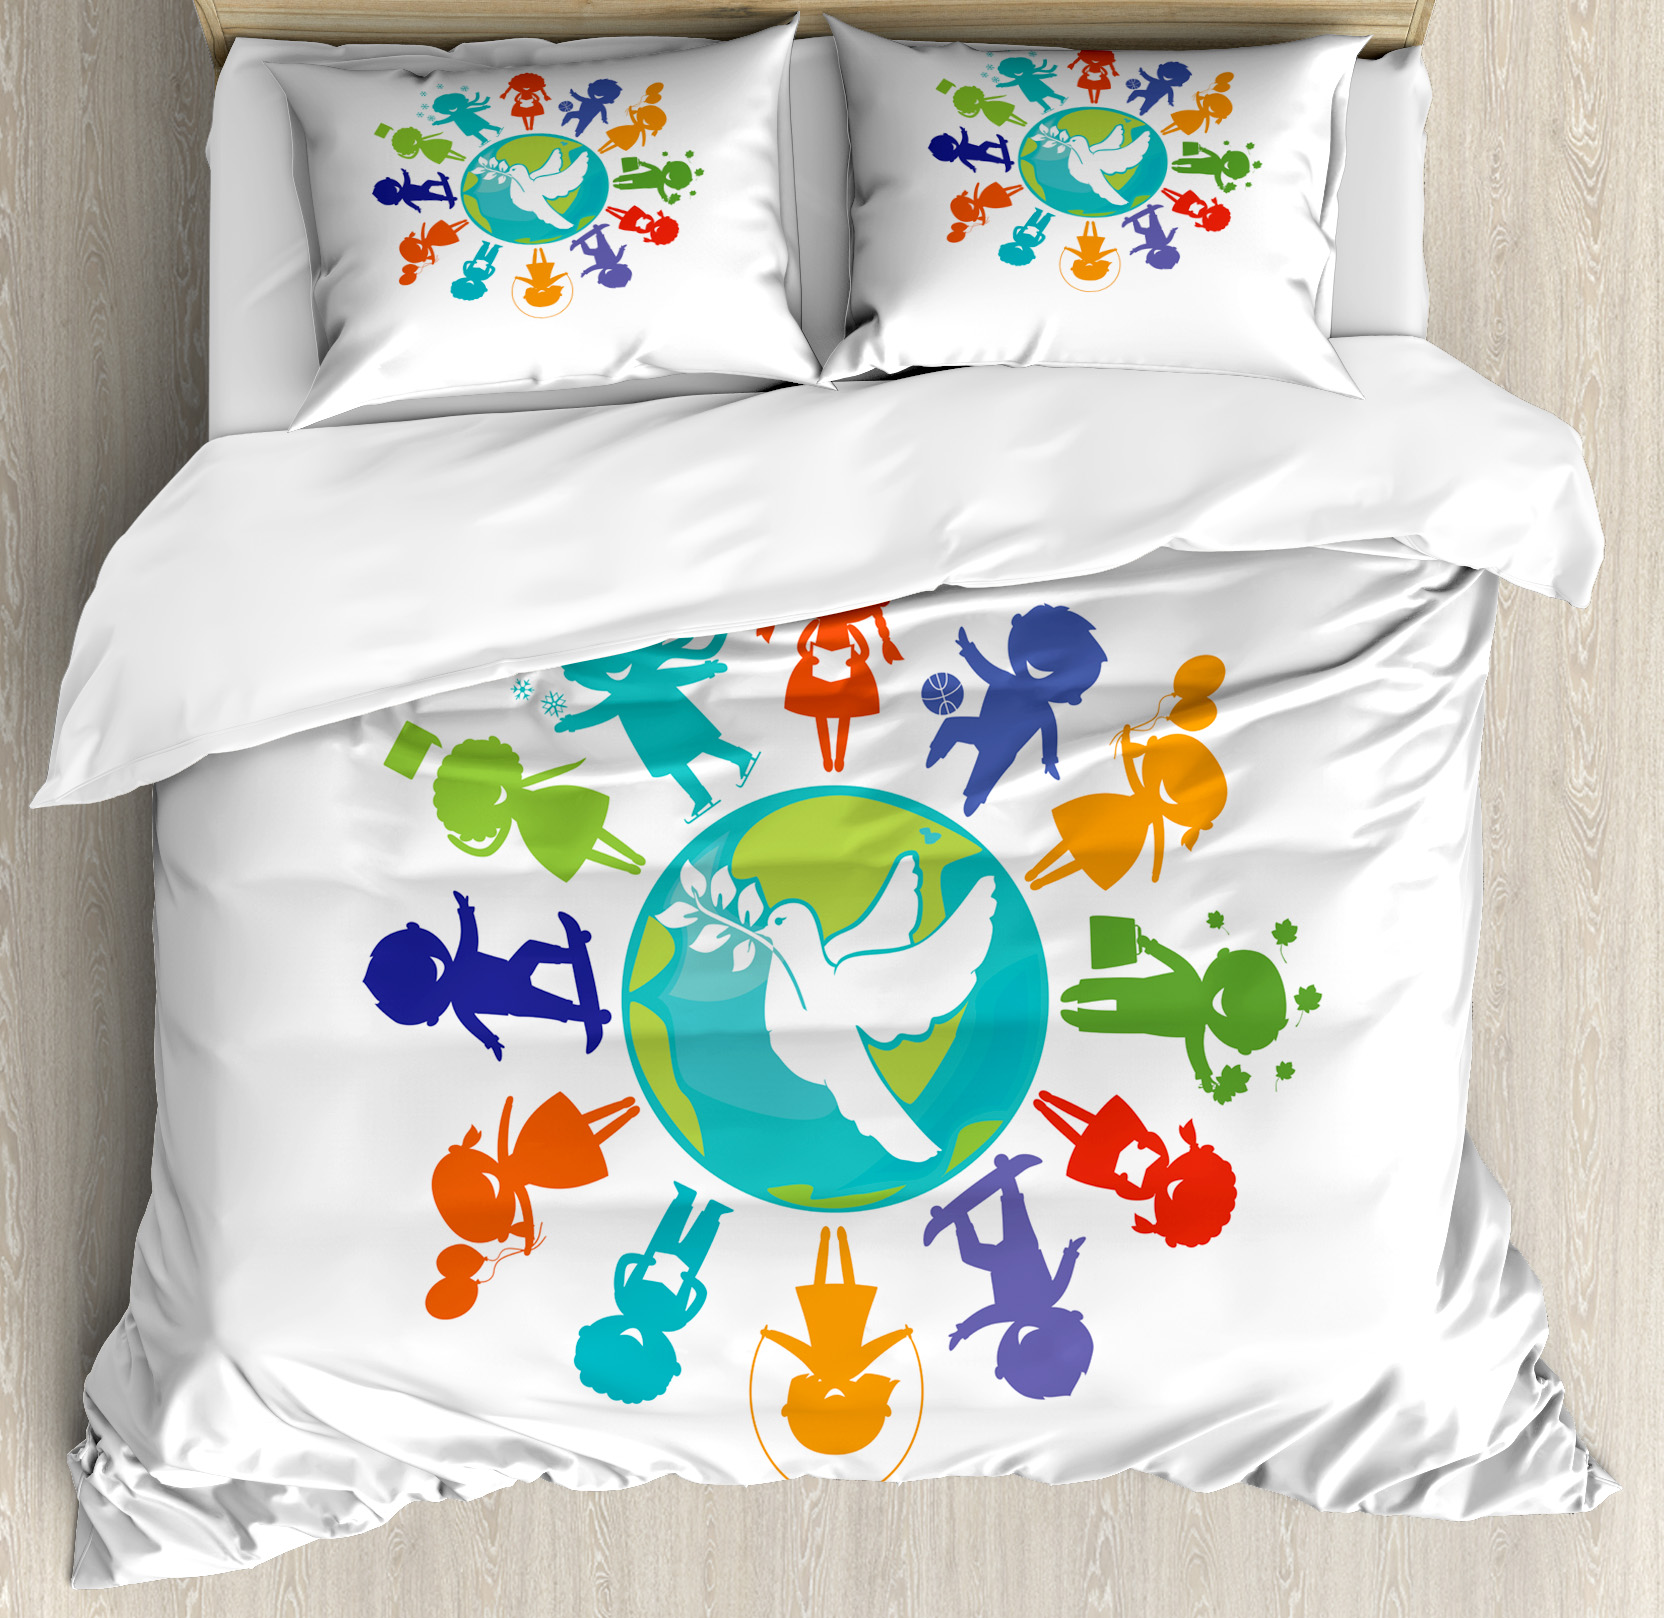 Youth King Size Duvet Cover Set, Cute Children Silhouettes around the World with Pigeon Symbol of Peace Earth Planet, Decorative 3 Piece Bedding Set with 2 Pillow Shams, Multicolor, by Ambesonne